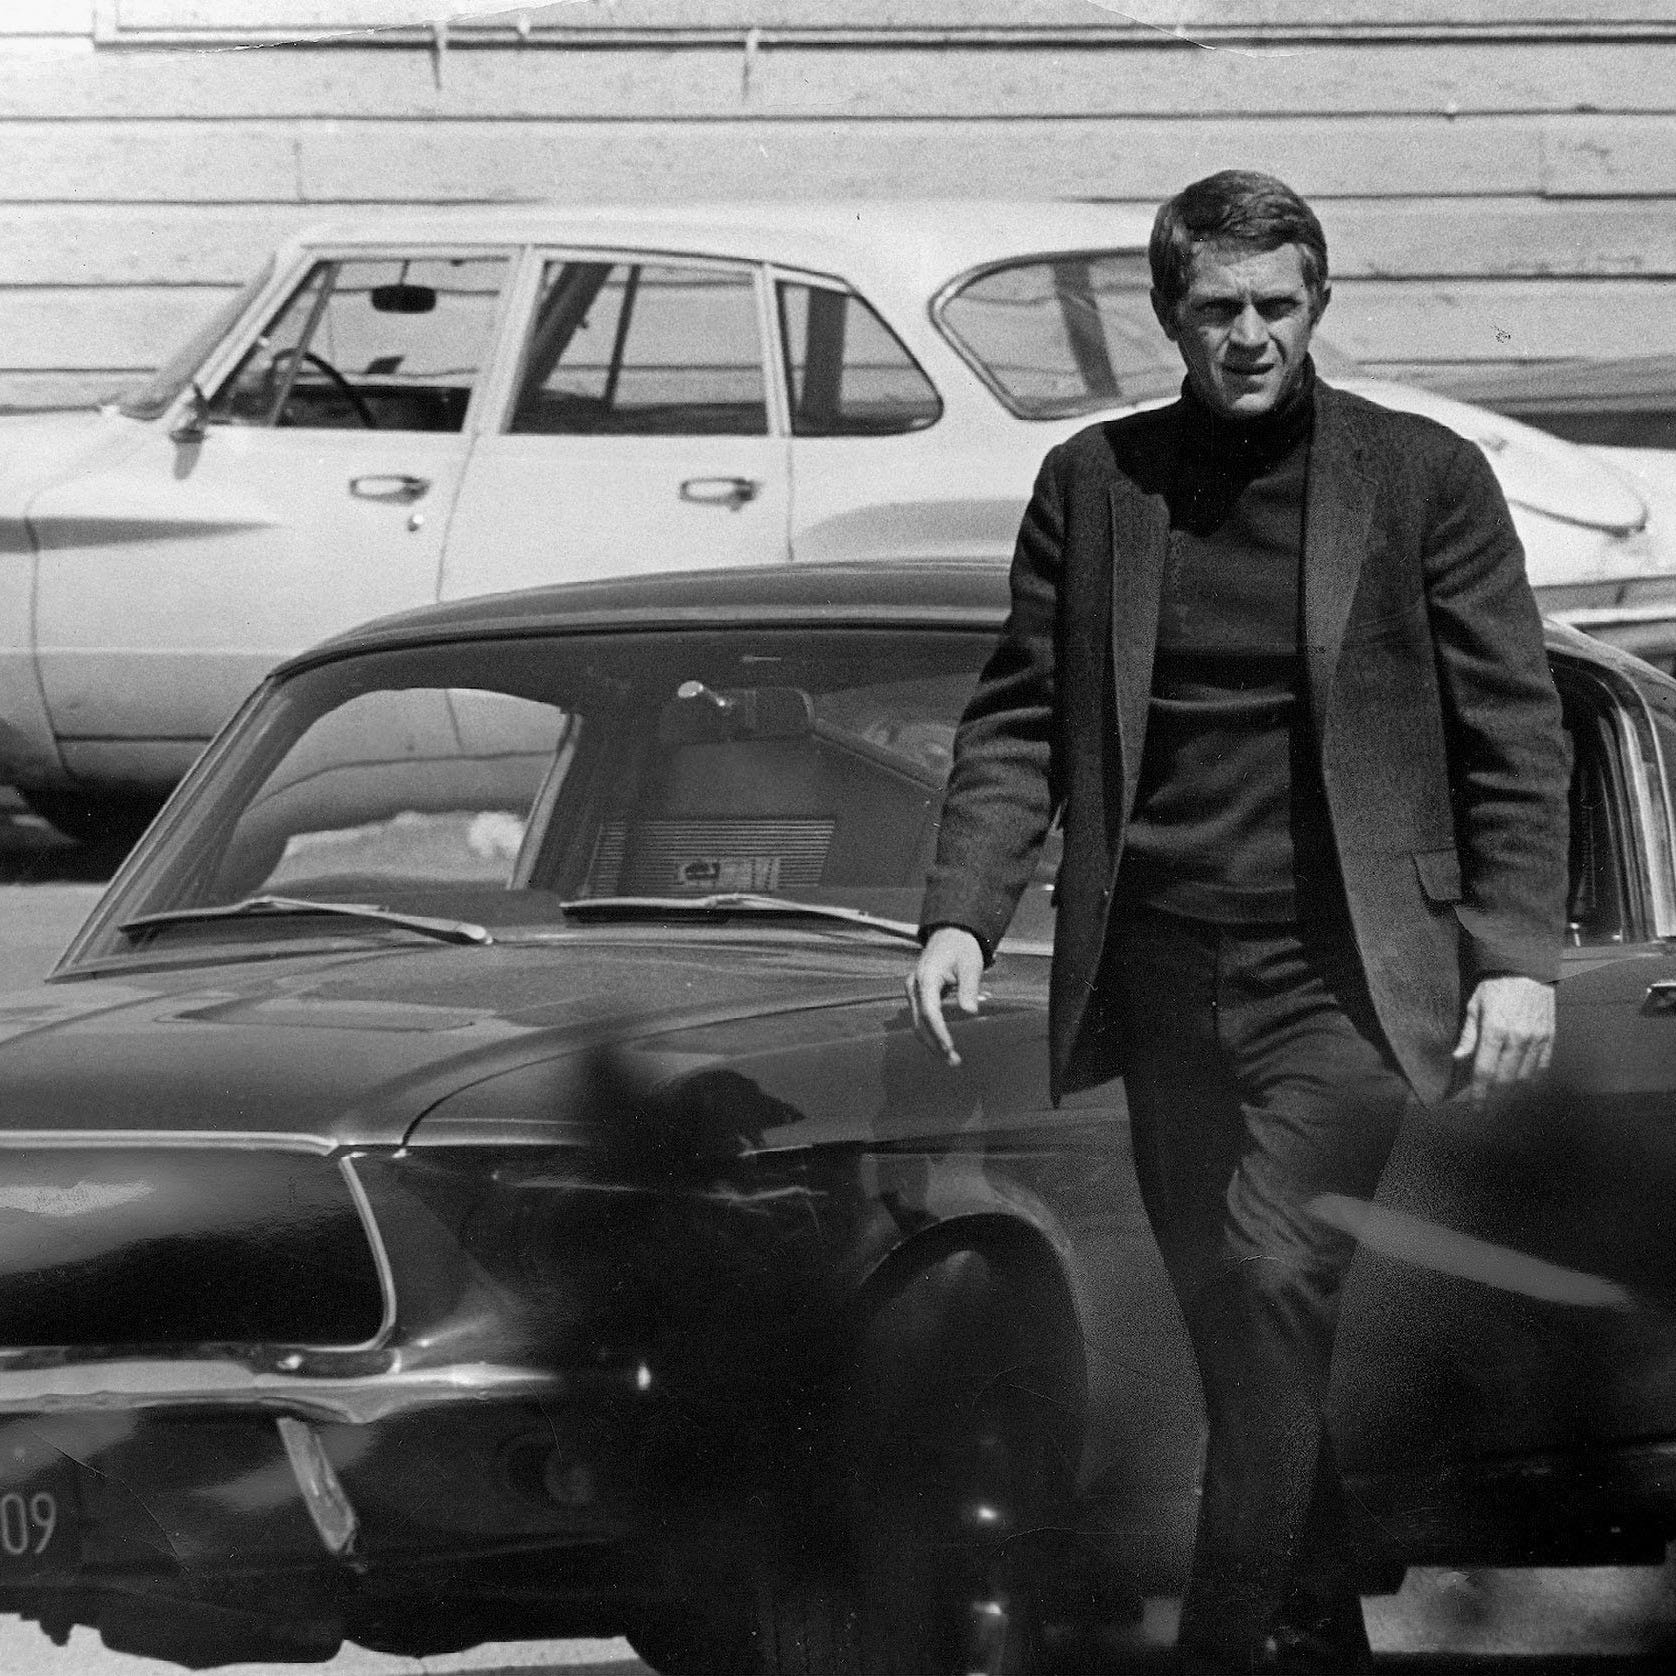 Ford Mustang Bullitt: 'I invented it' and want to drive it, screenwriter says